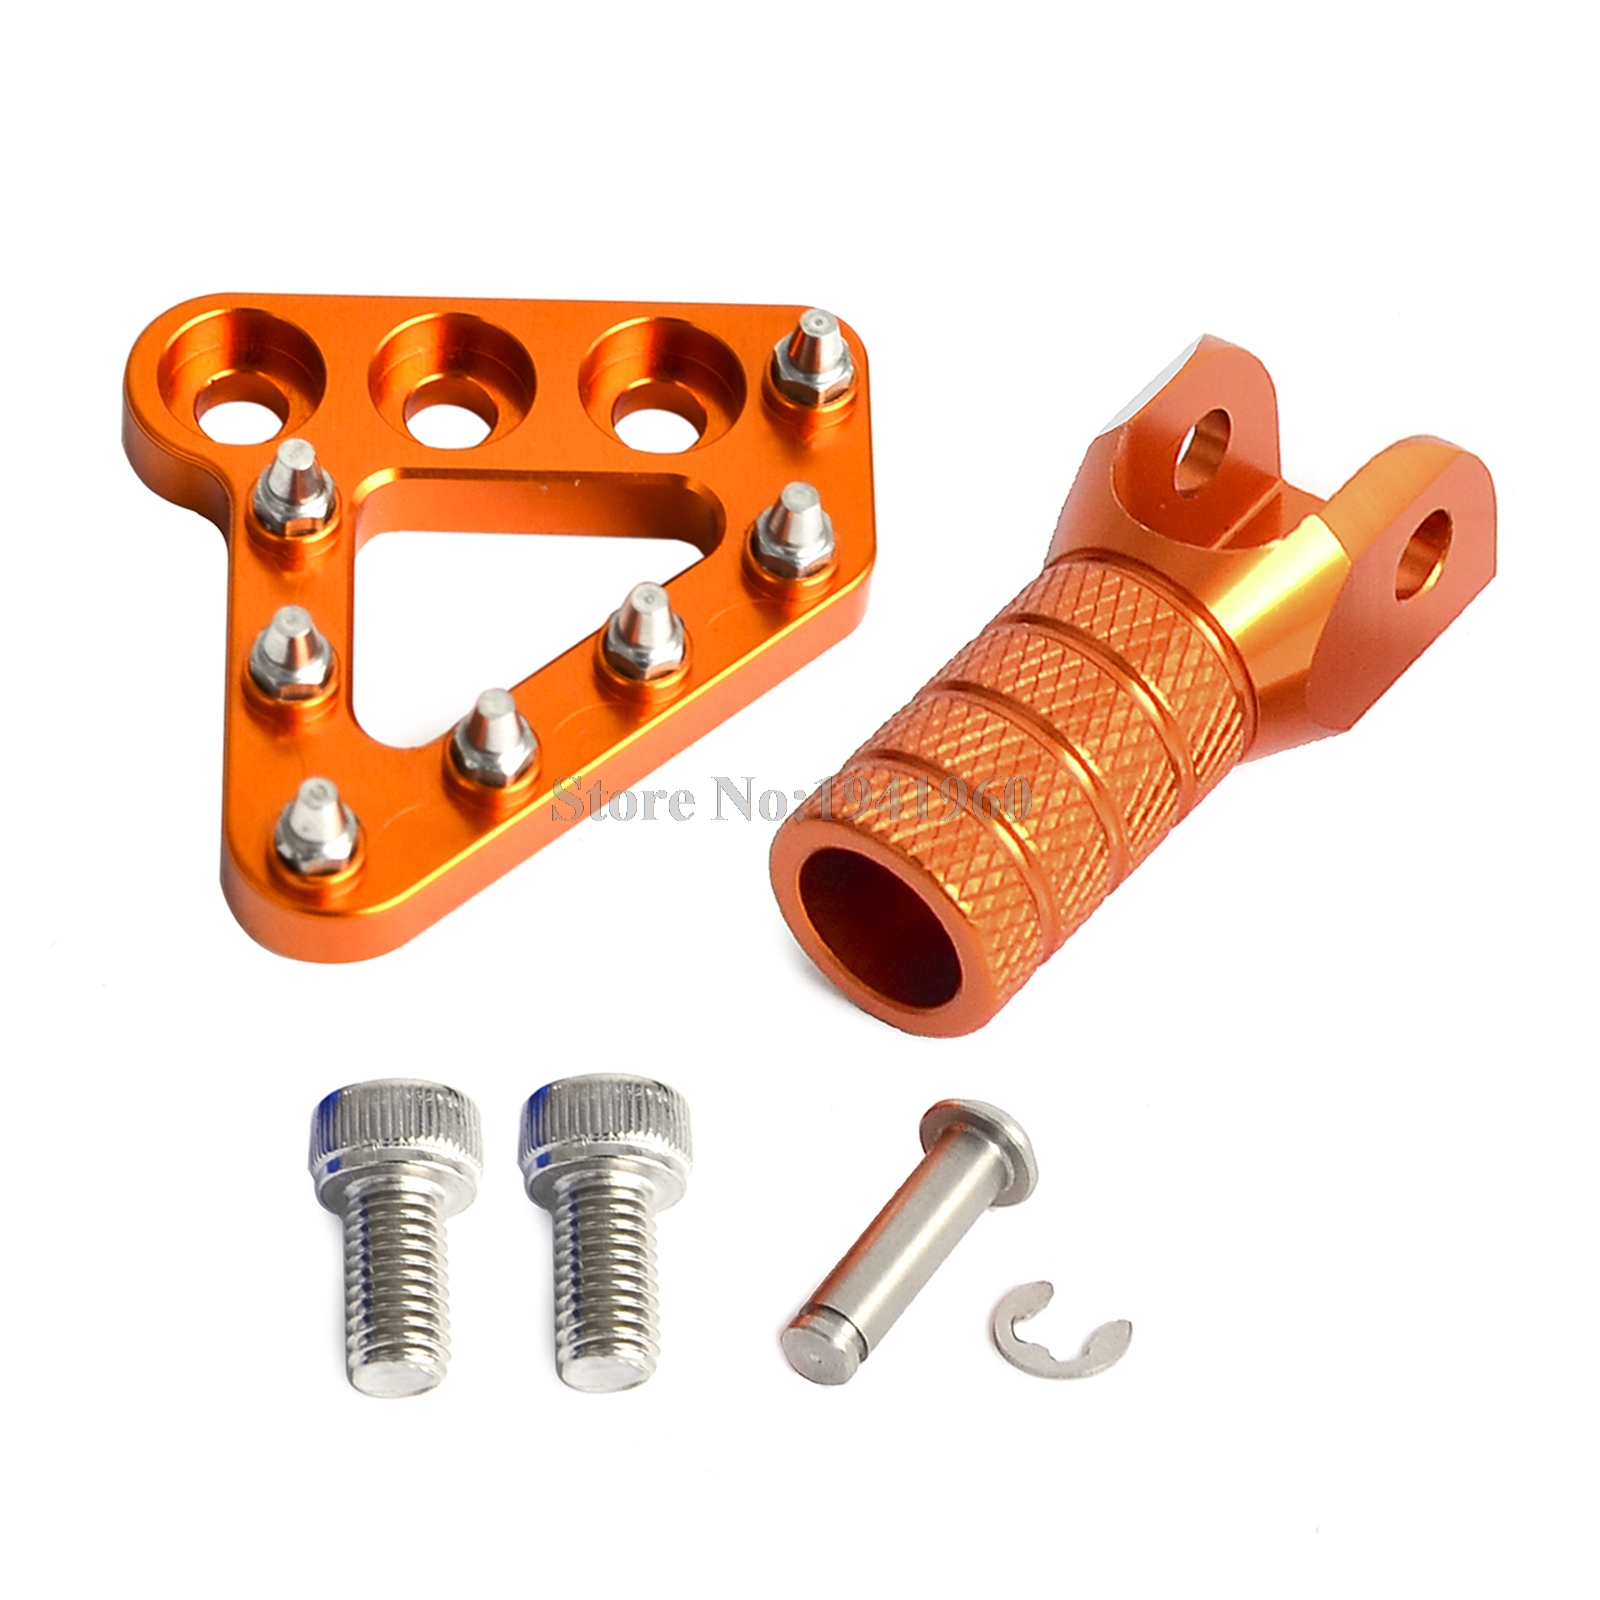 Clean Speed Extended Brake Pedal Pad Orange for KTM 450 EXC-F Six Days 2017-2018